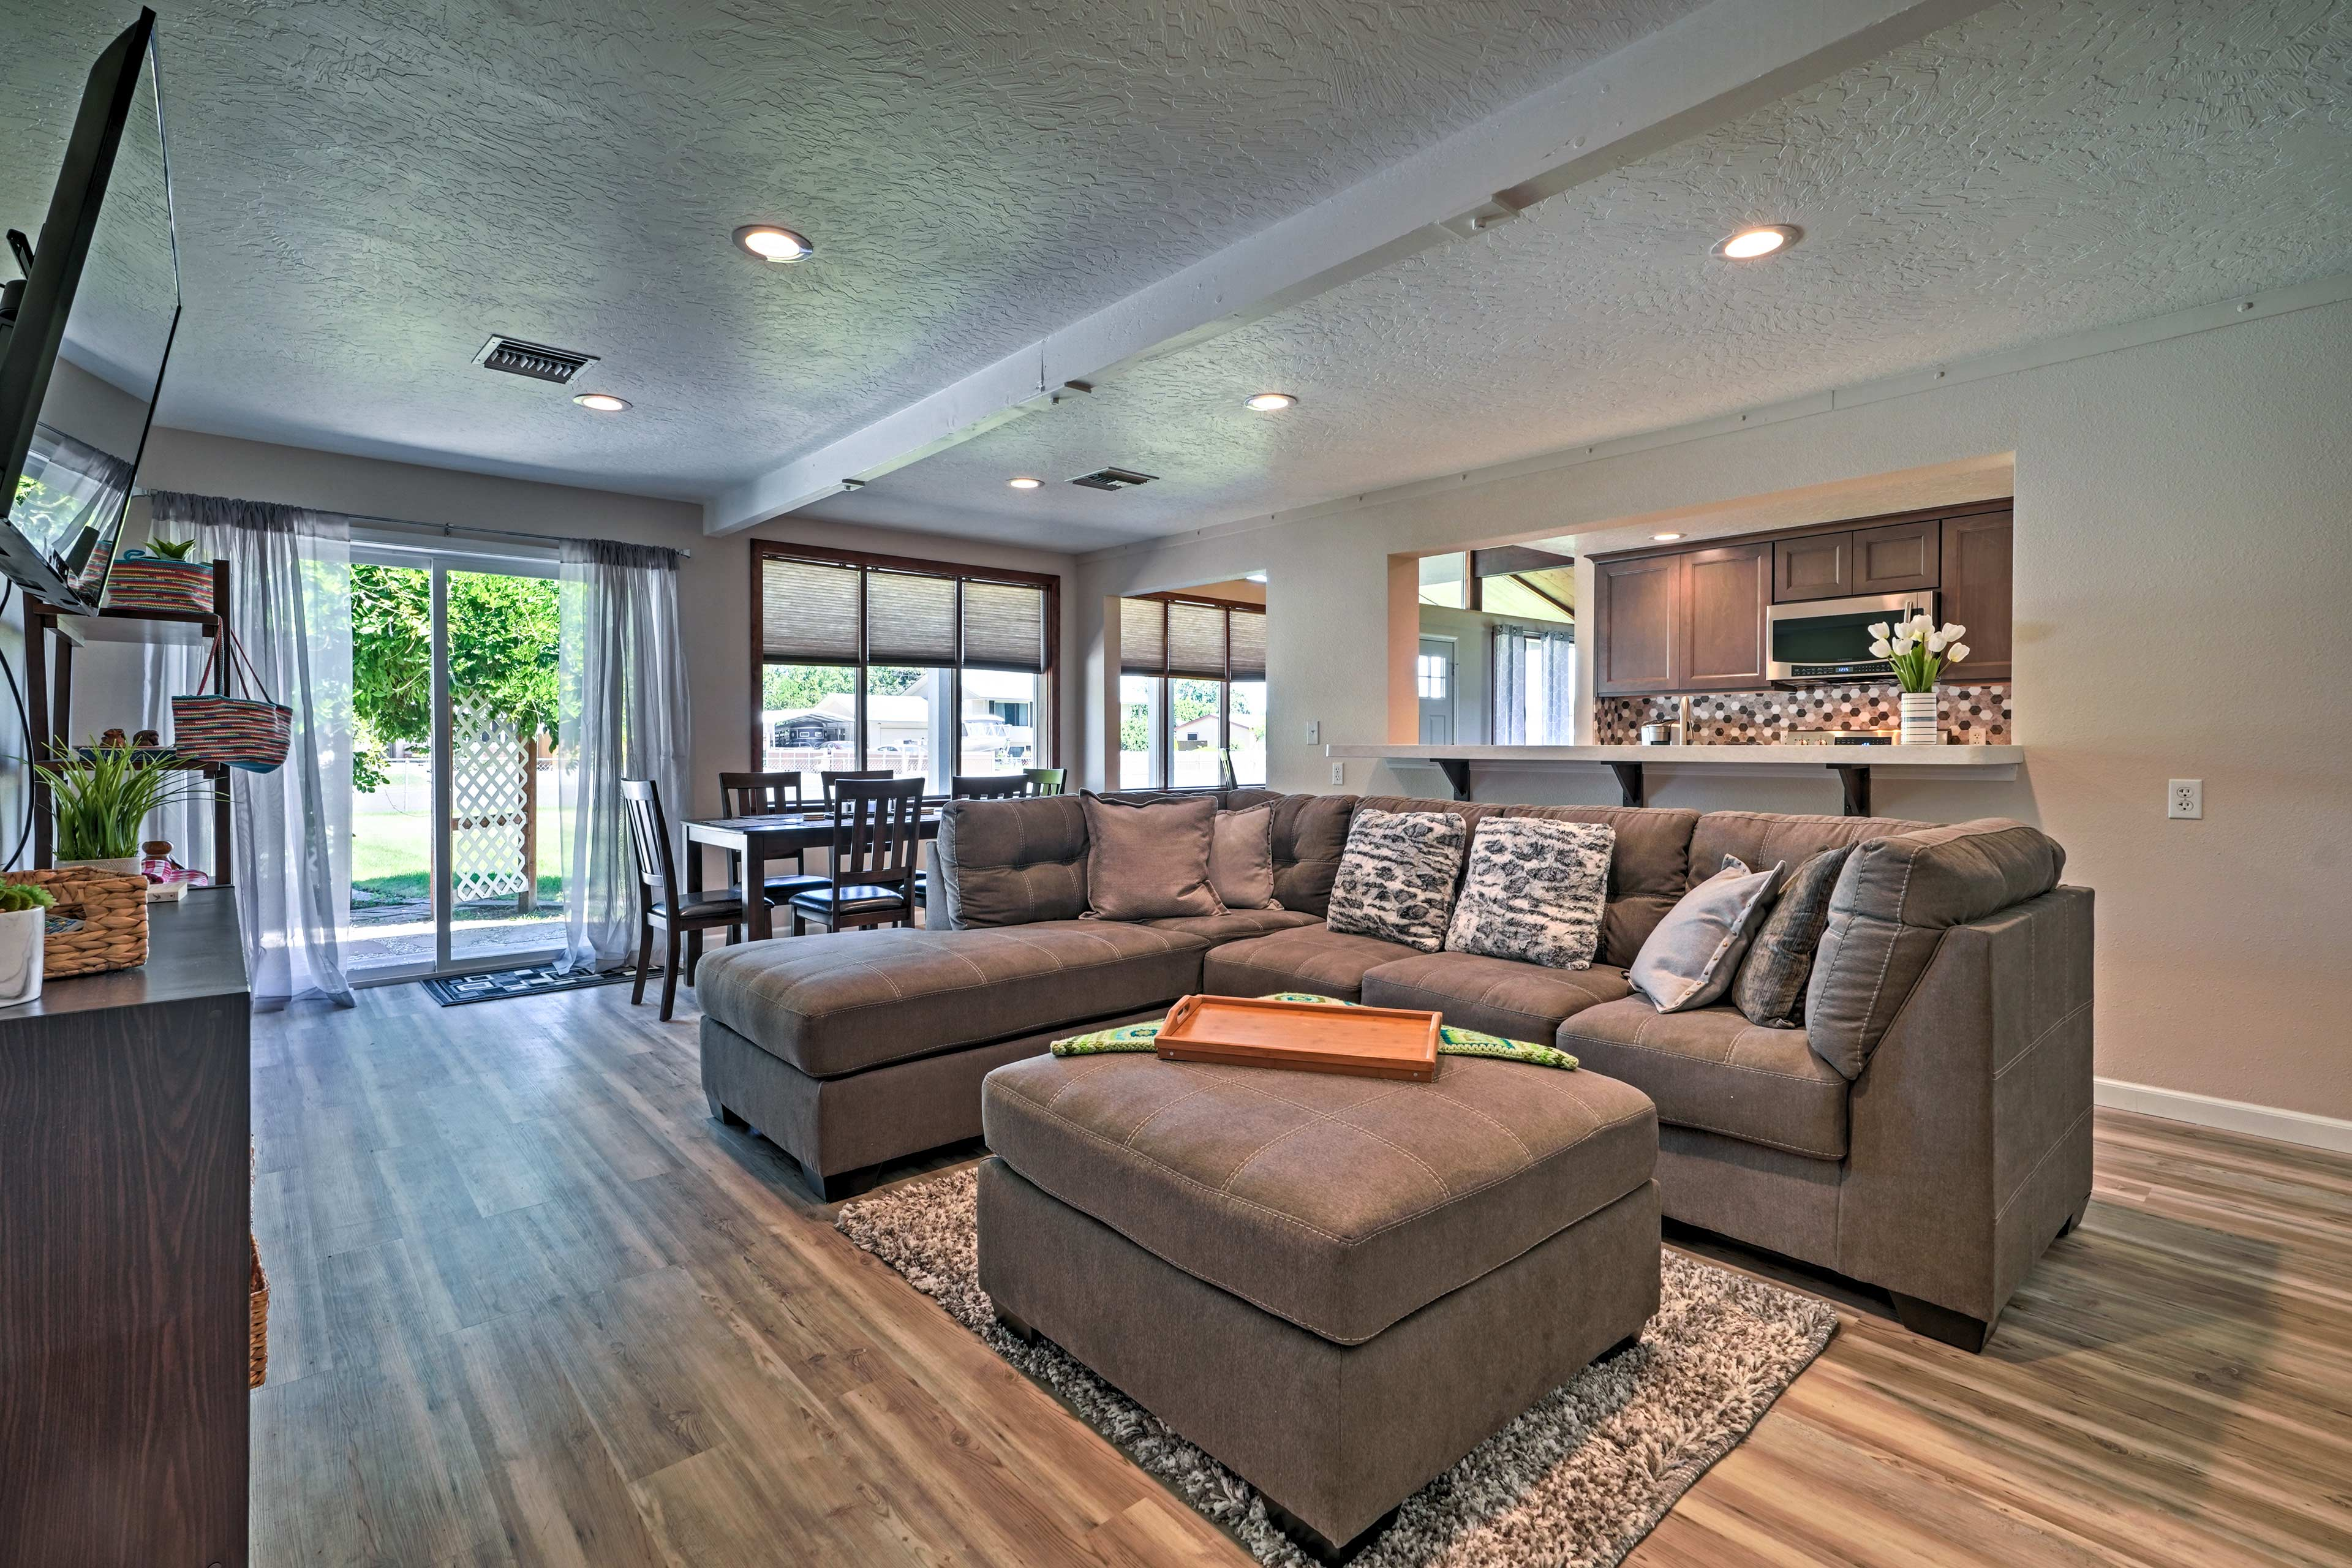 Take a trip to the Tri-Cities and book this exceptional vacation rental!